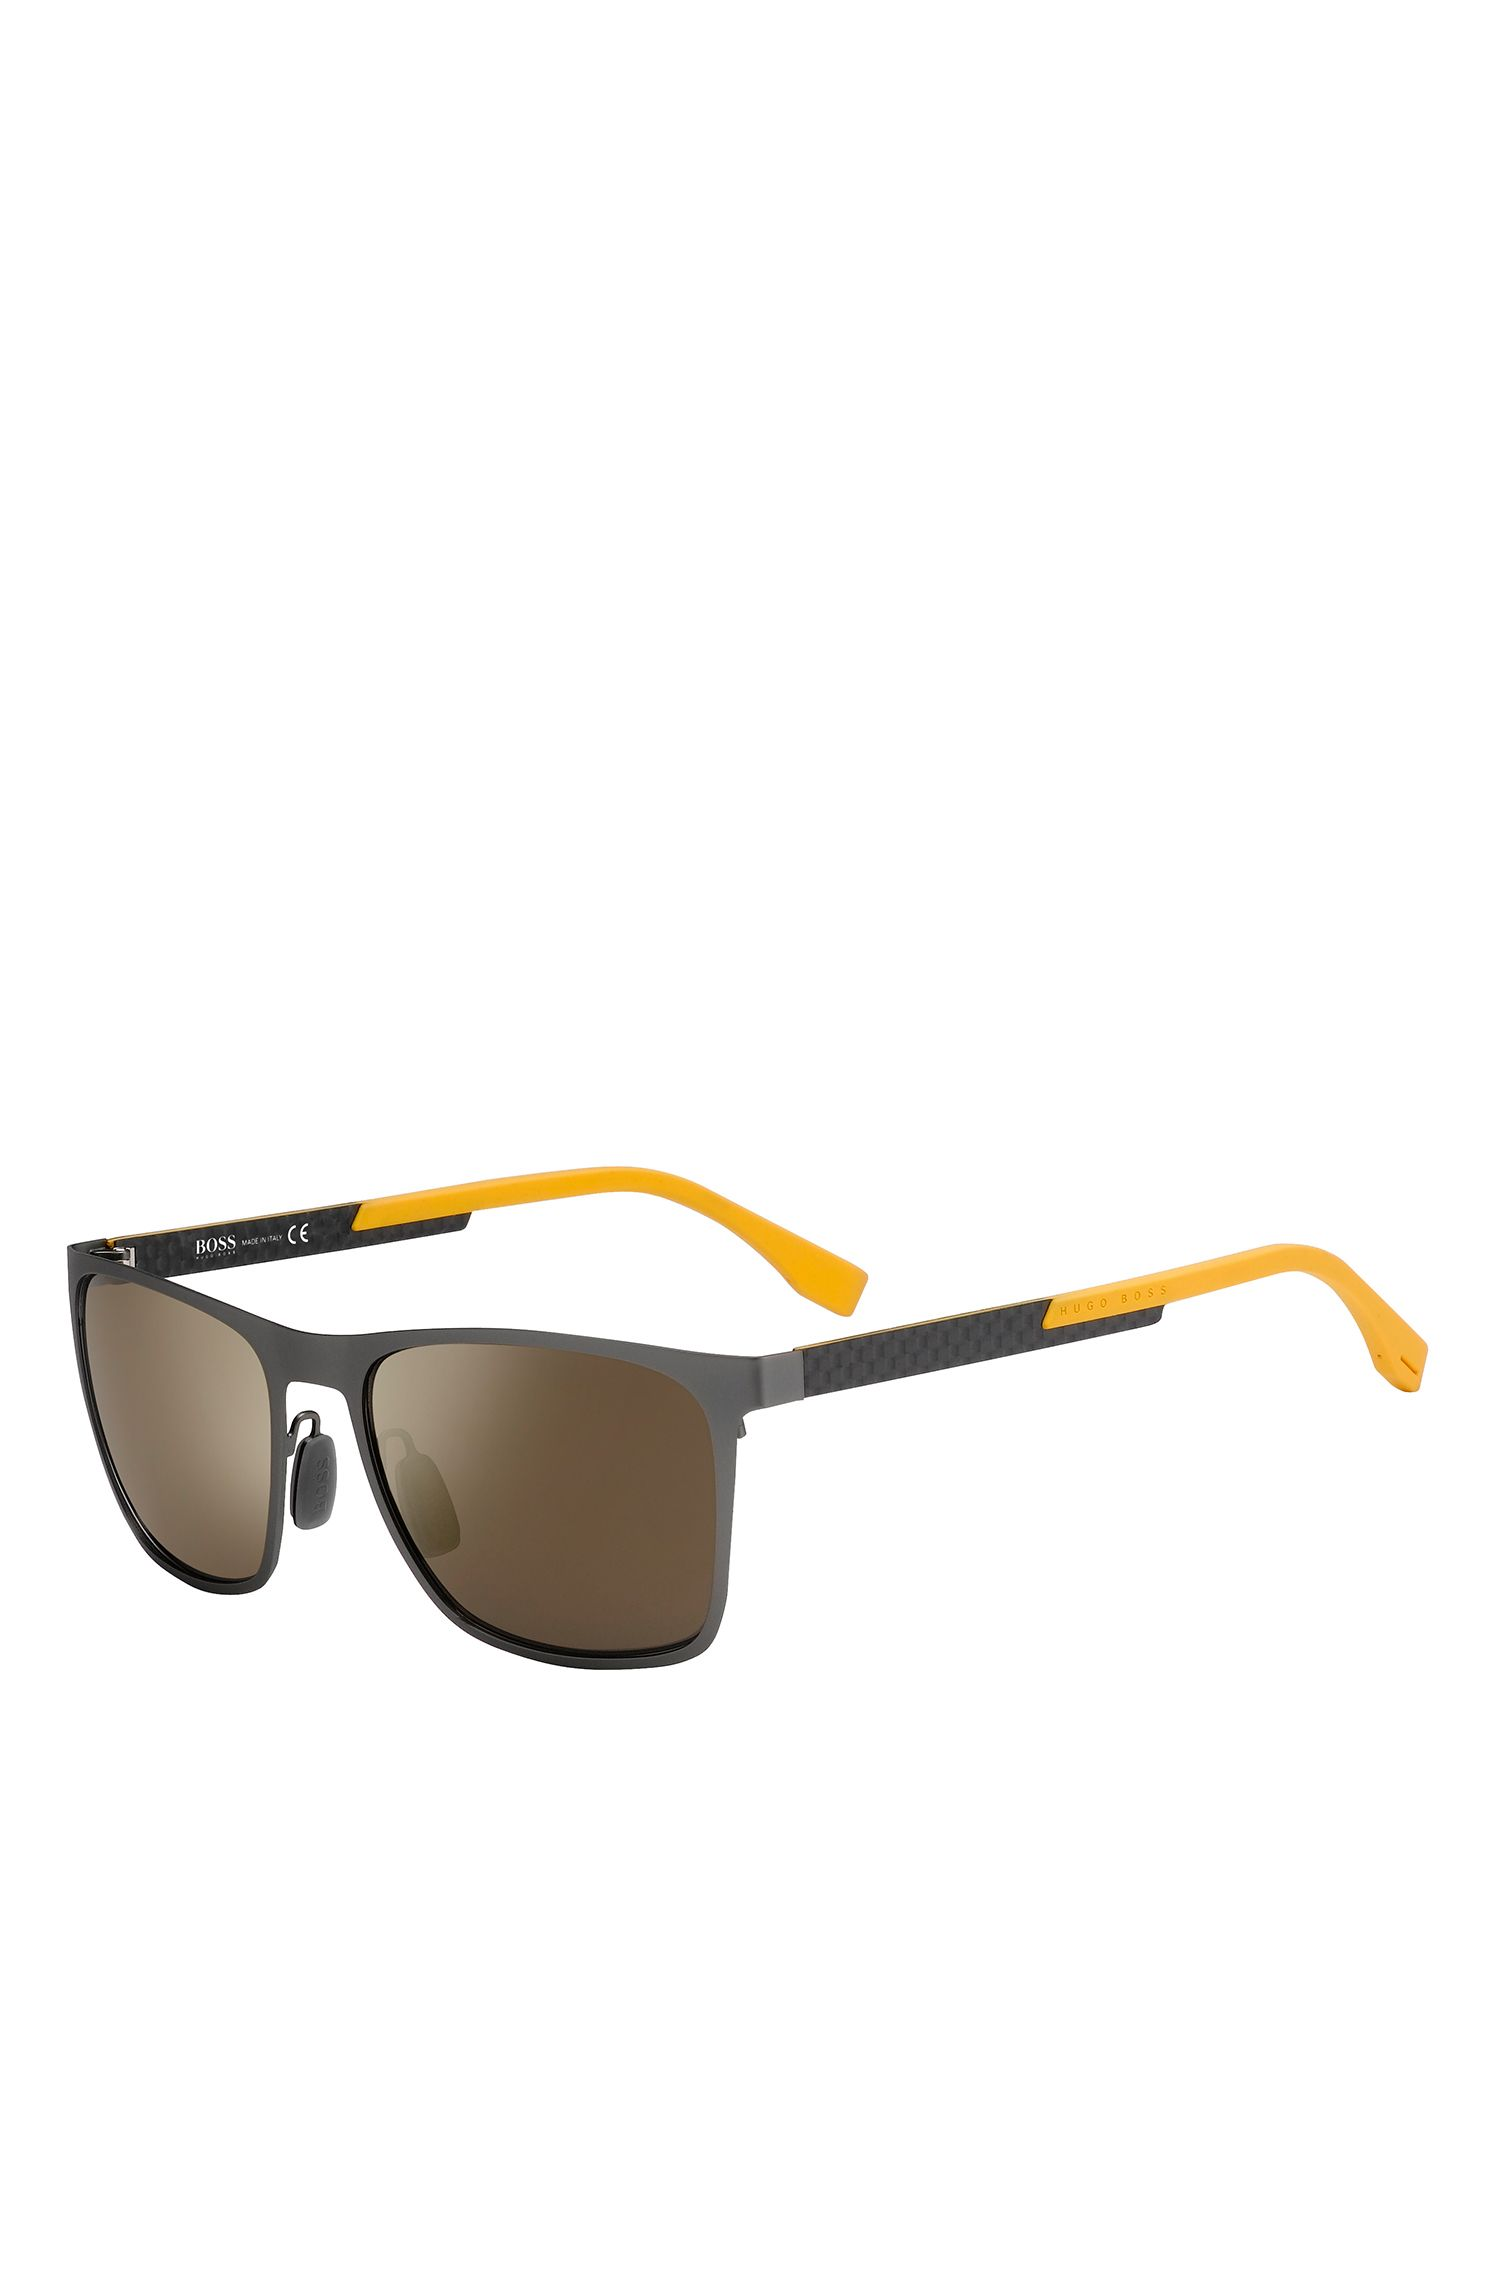 'BOSS 0732S' | Gunmetal Flash Lens Rectangular Sunglasses